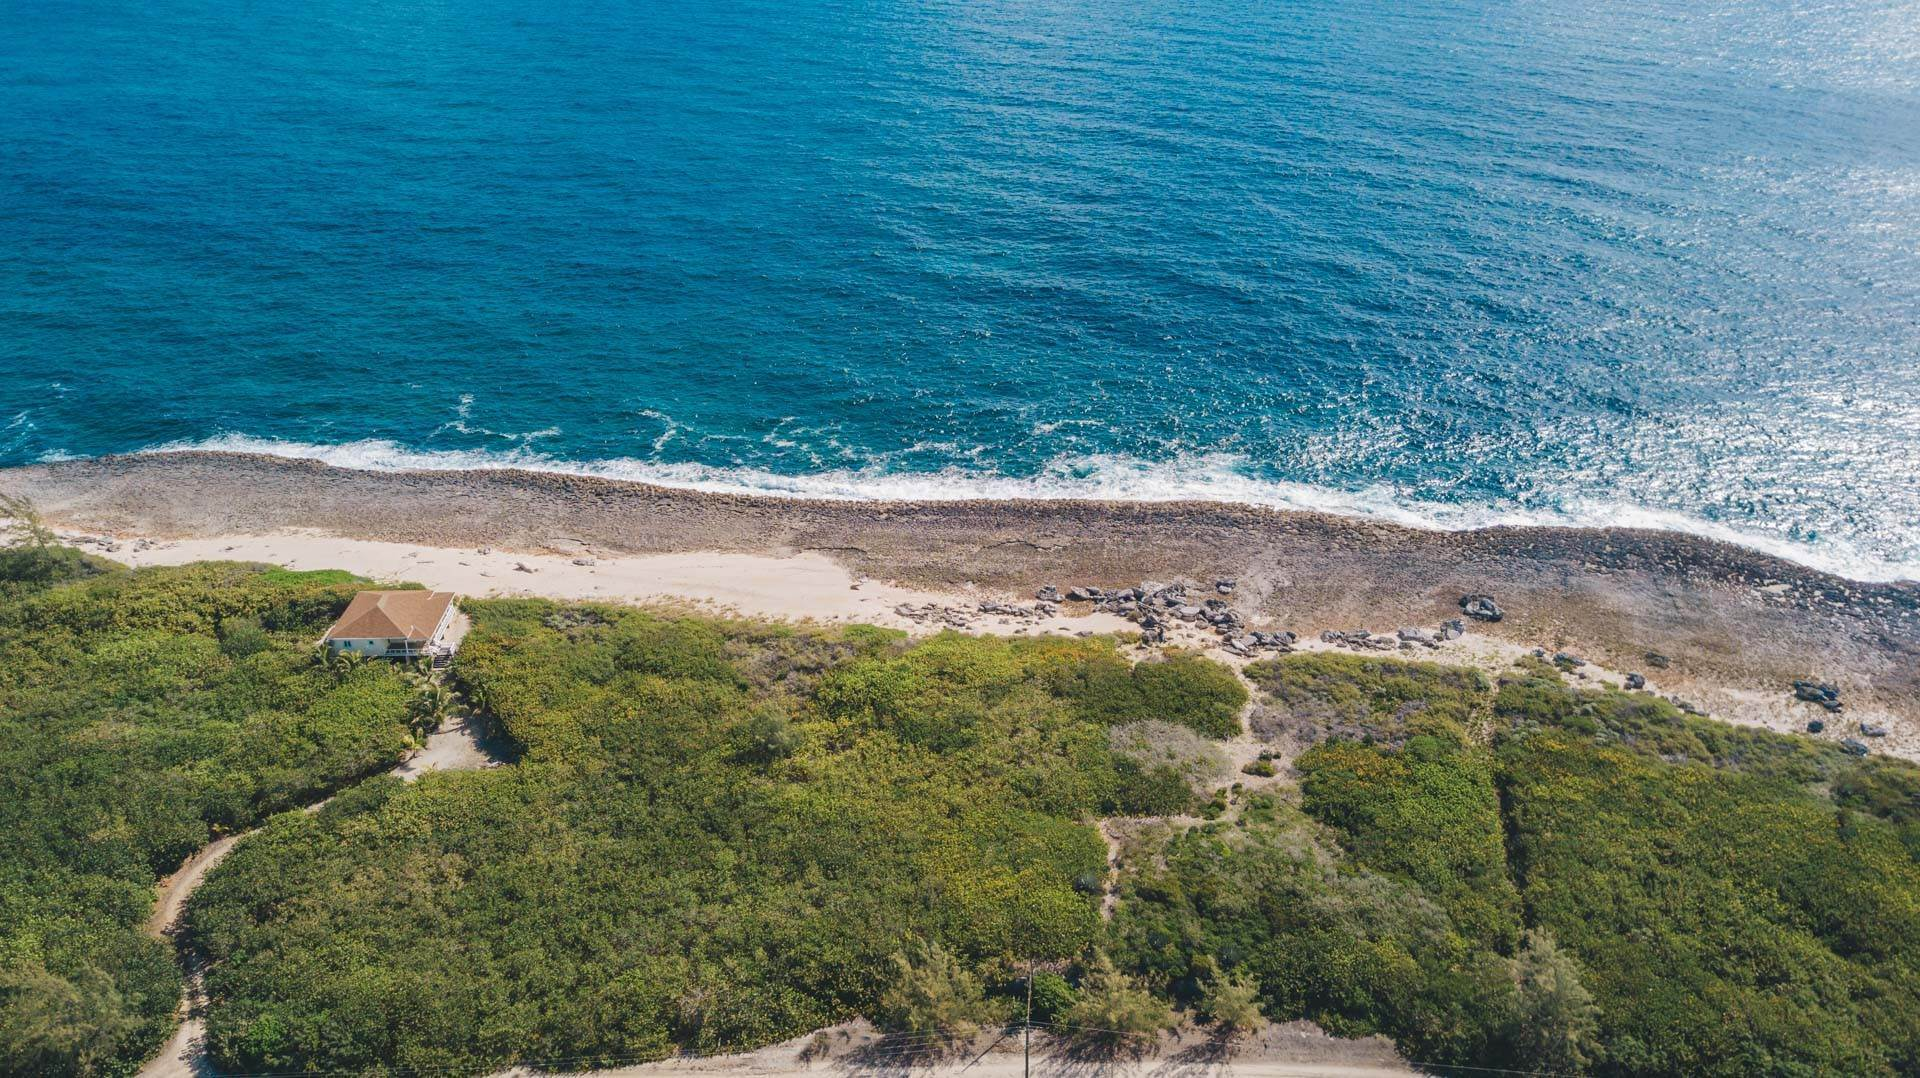 Terreno por un Venta en Best Waterfront Deal in Whale Point!- MLS 34769 Whale Point, Eleuthera, Bahamas